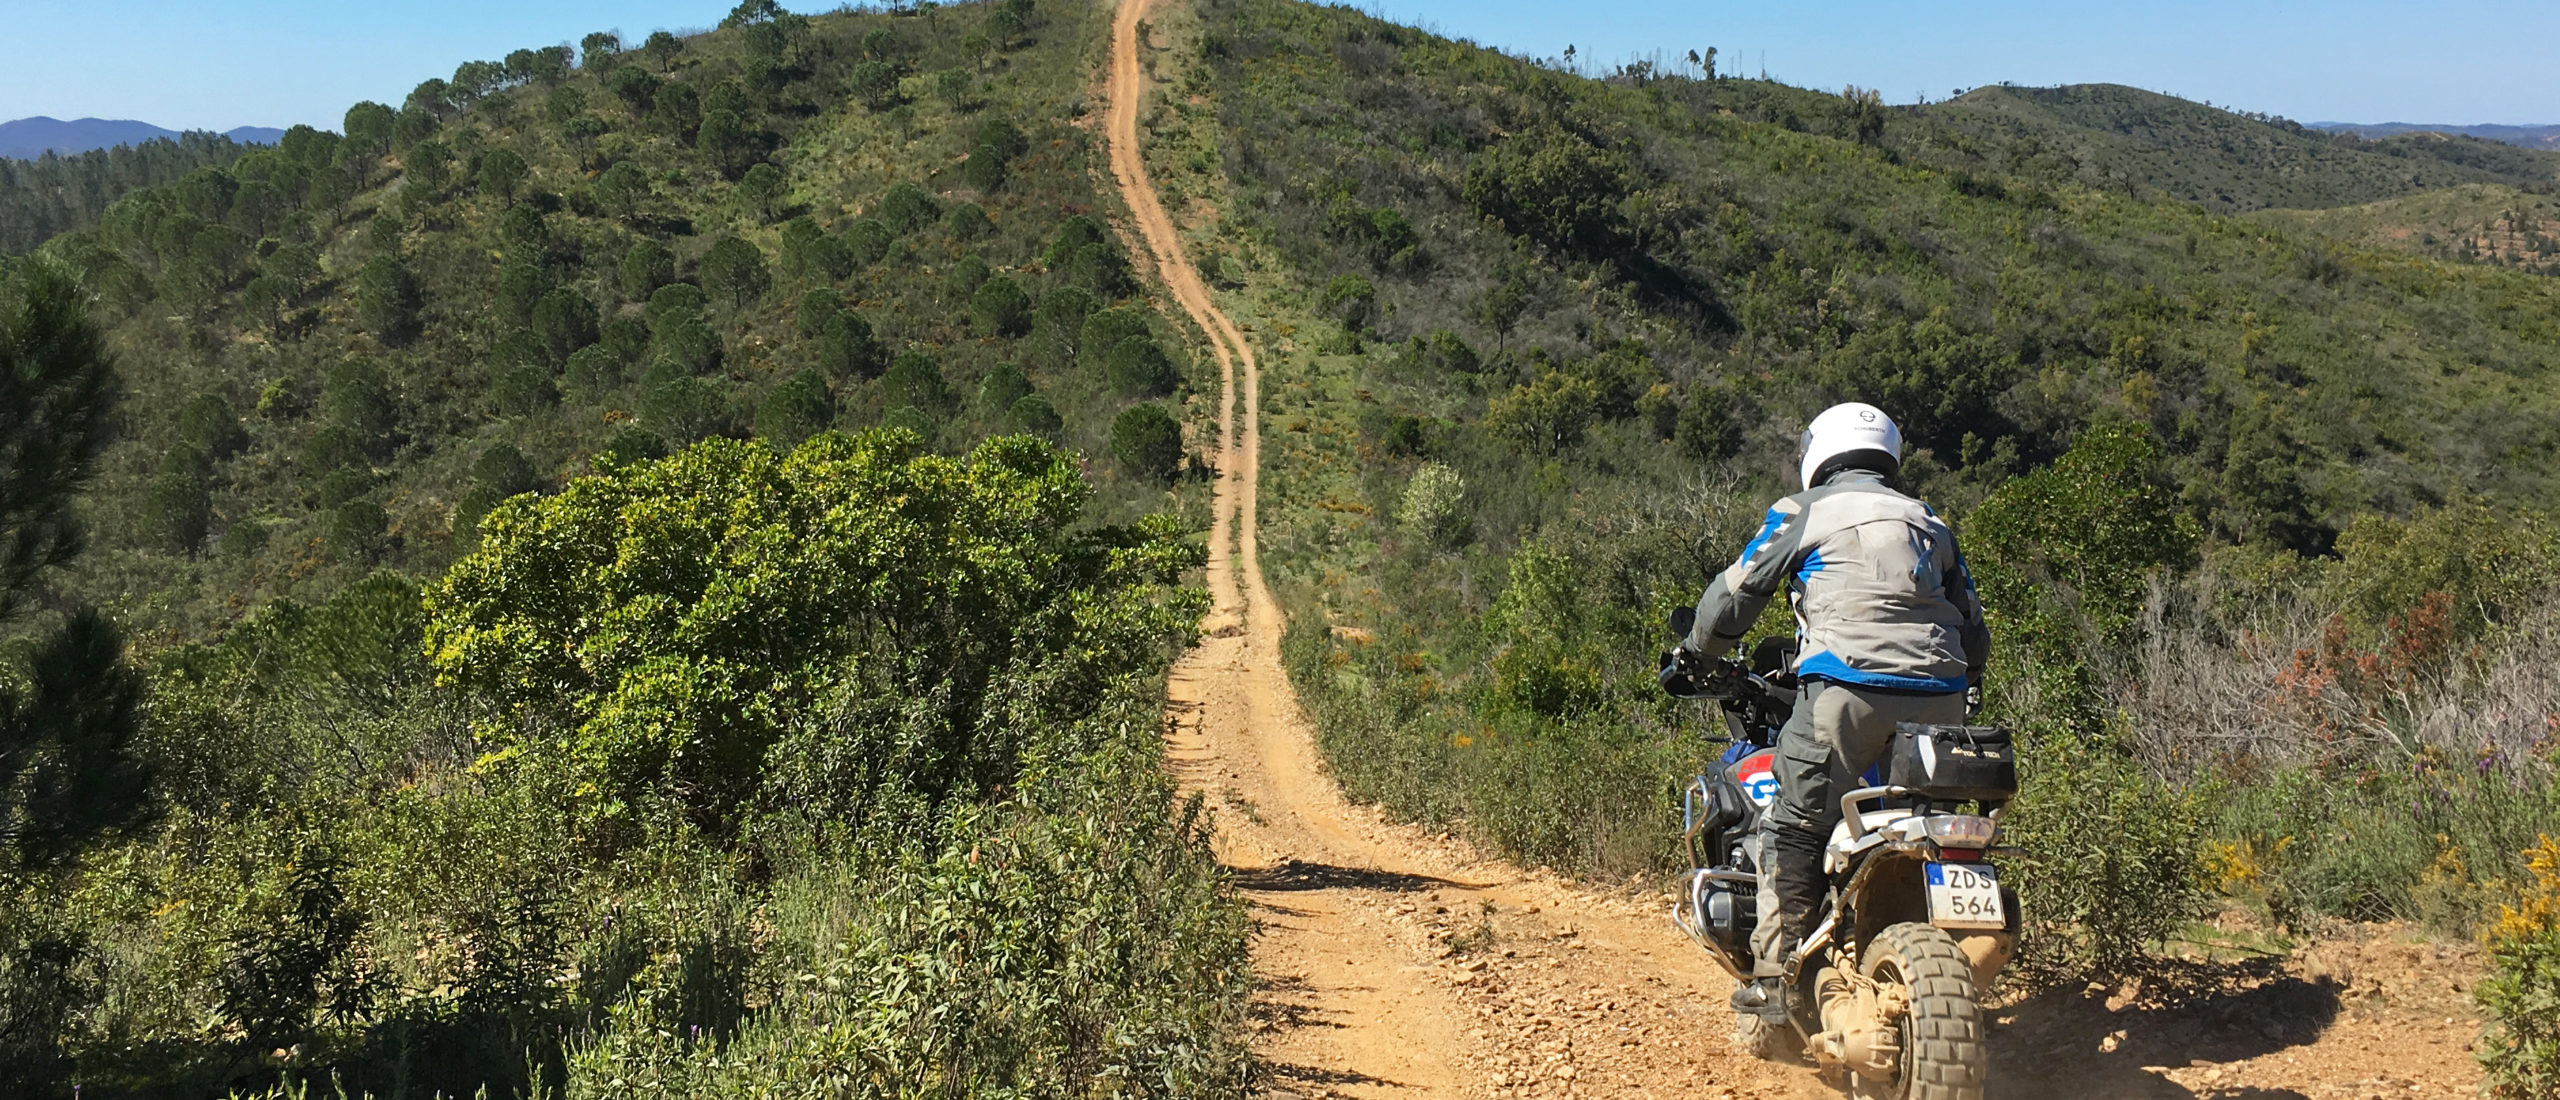 Touratech Experience Portugal 2019